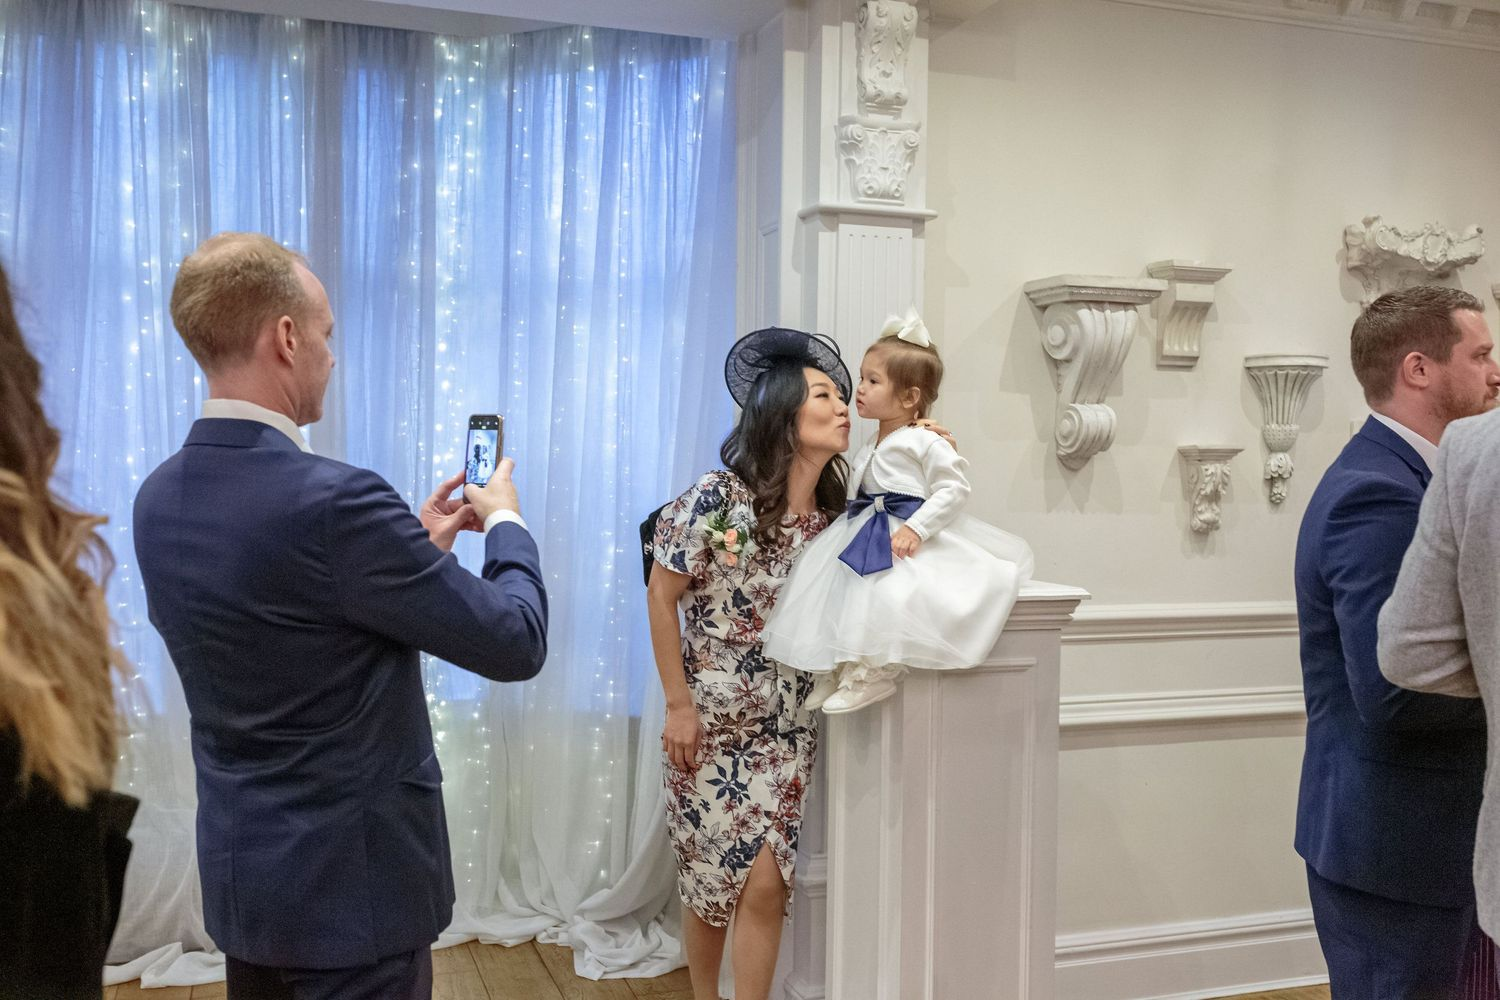 brides brother takes a photo of his wife and young daughter sitting on a pillar in the ceremony room at ashfield house